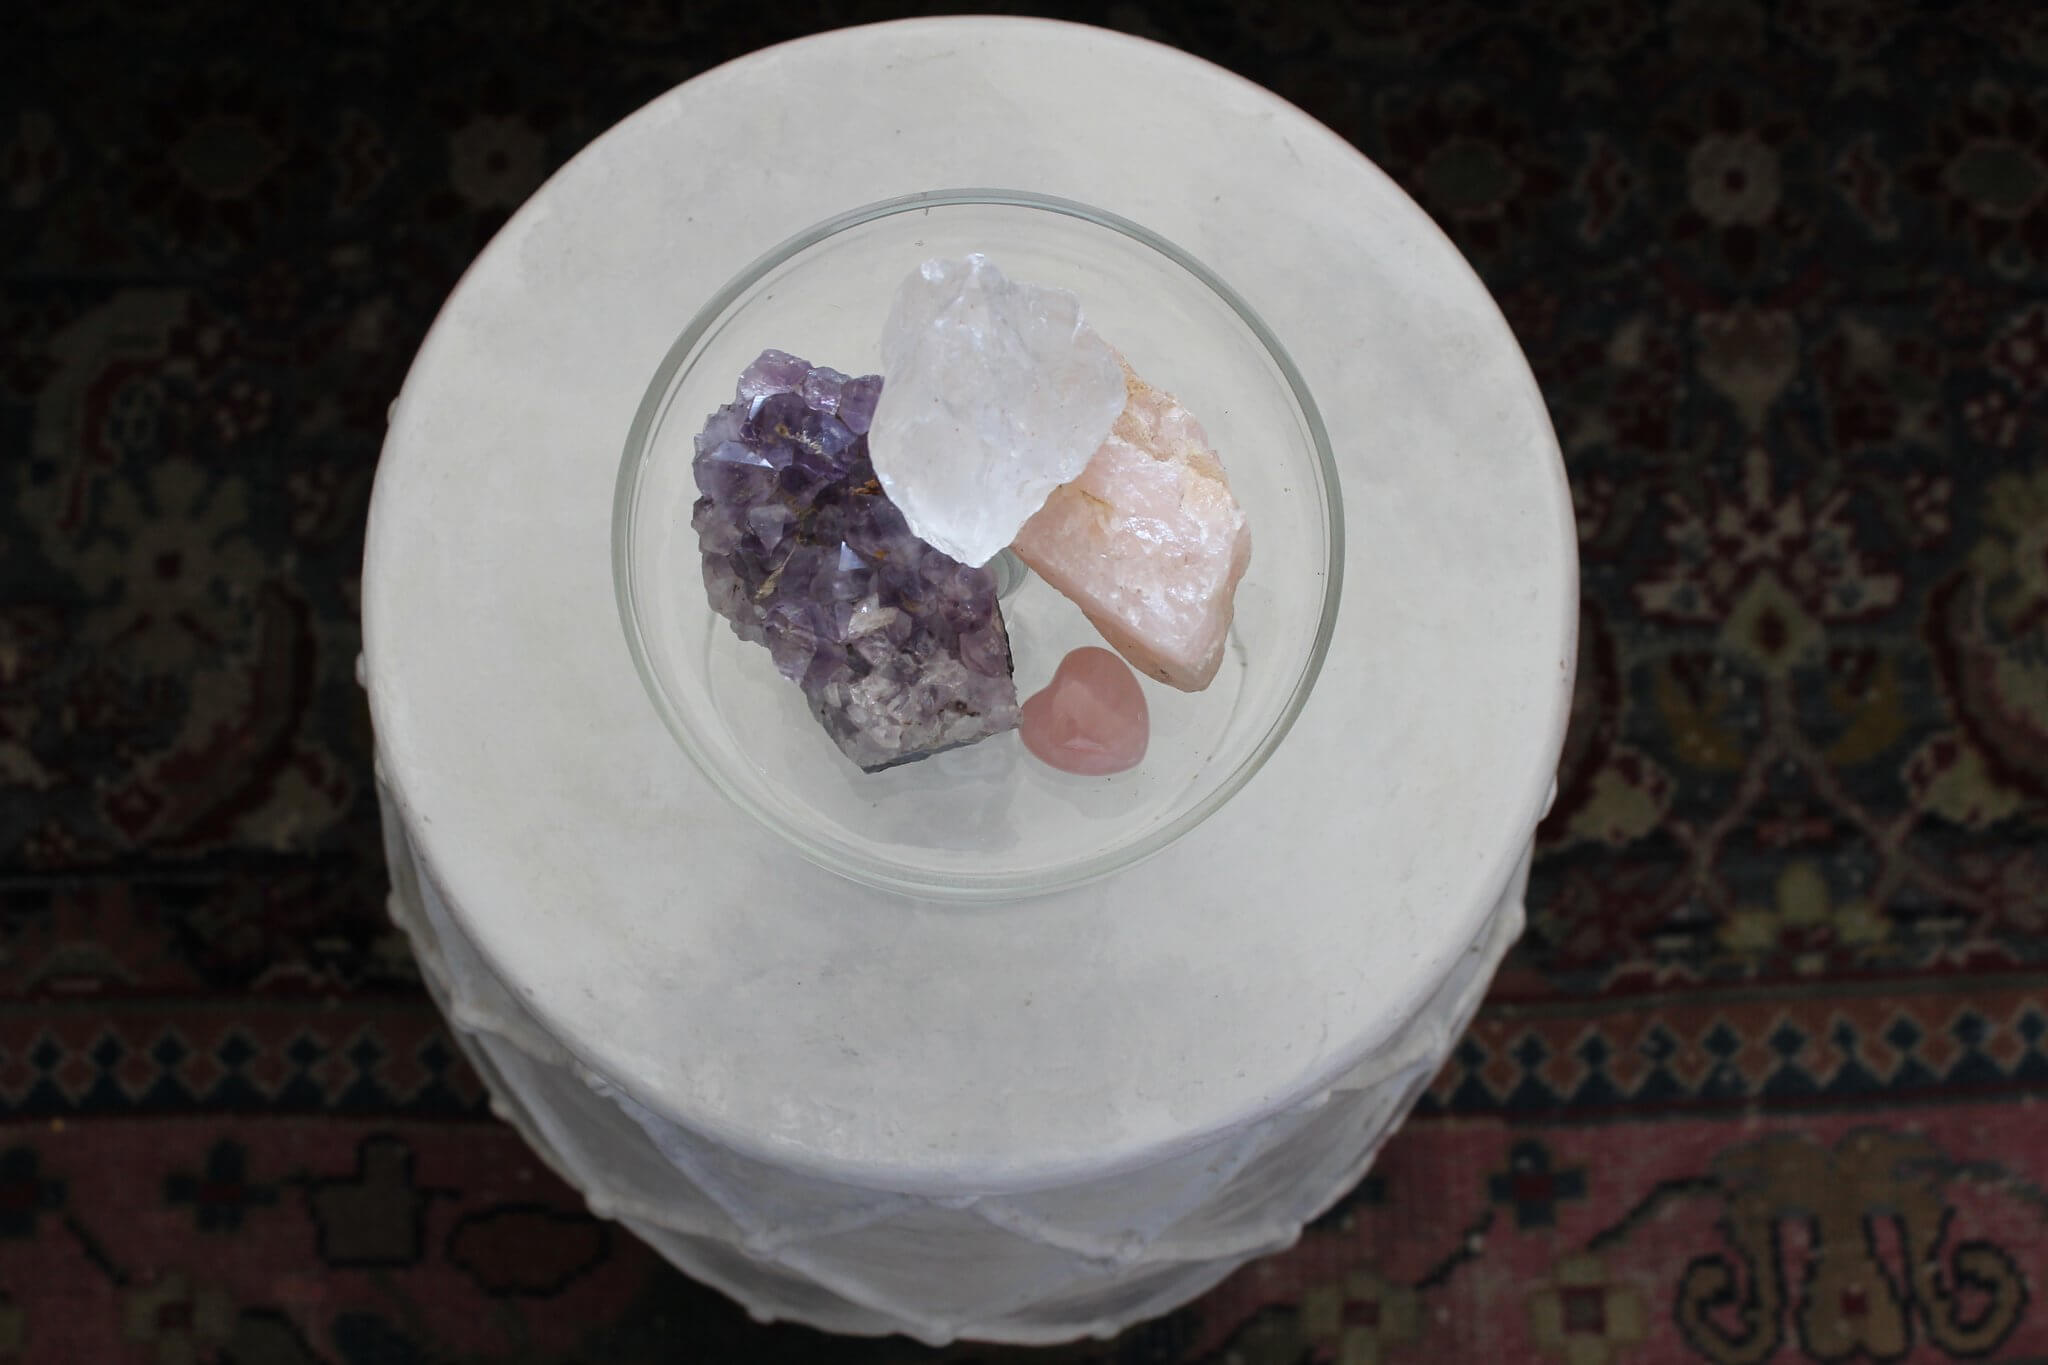 5-Healing-Crystals-for-Your-Home